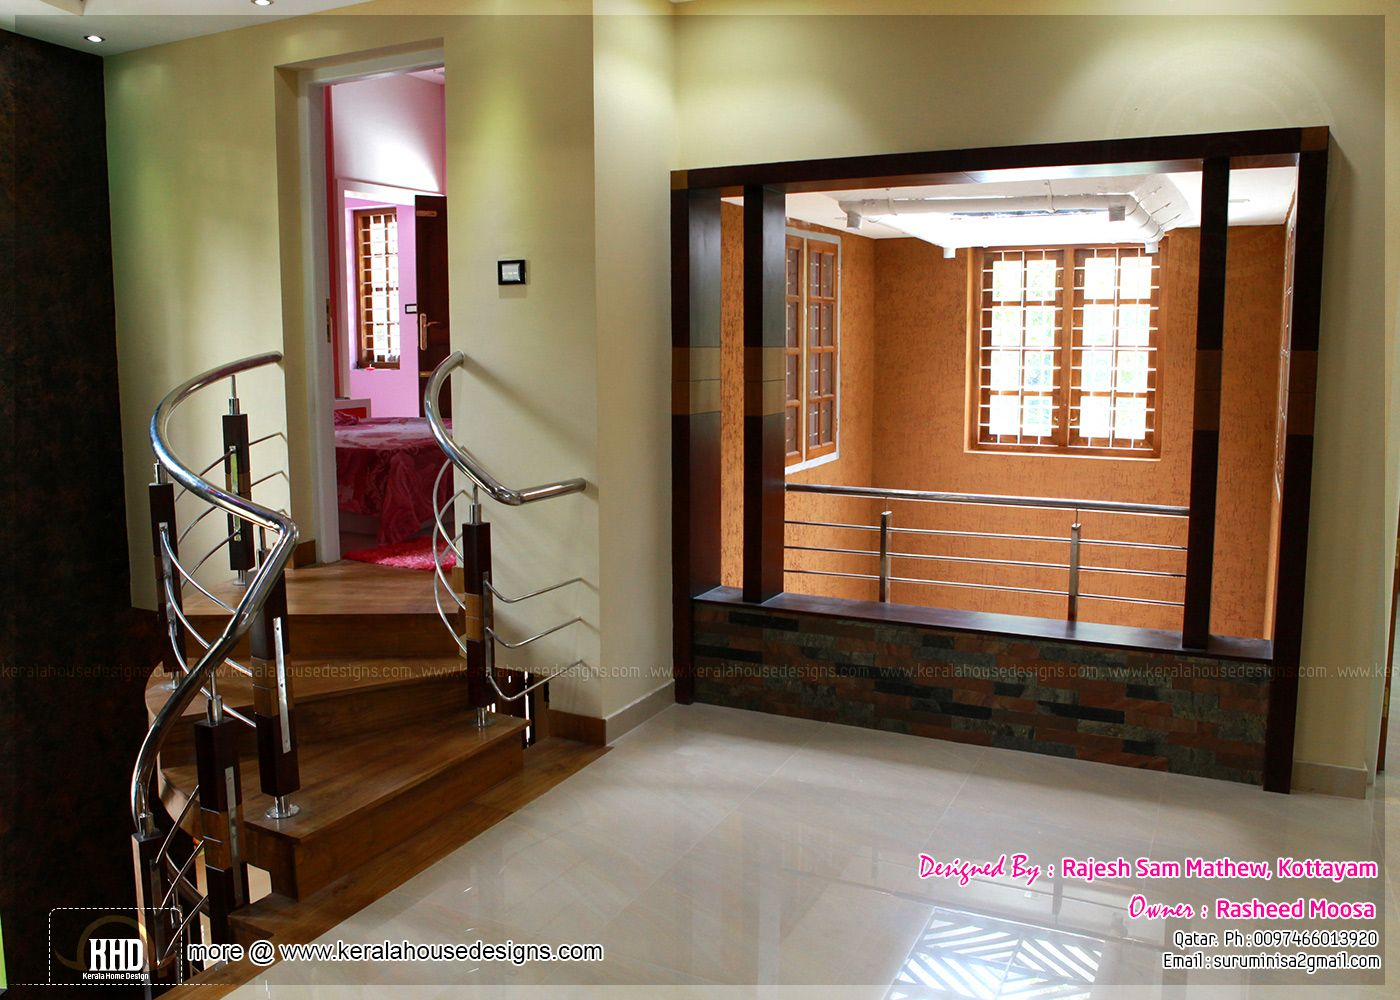 Home Design Jobs Interior Design For Small Houses In Kerala Conception De La